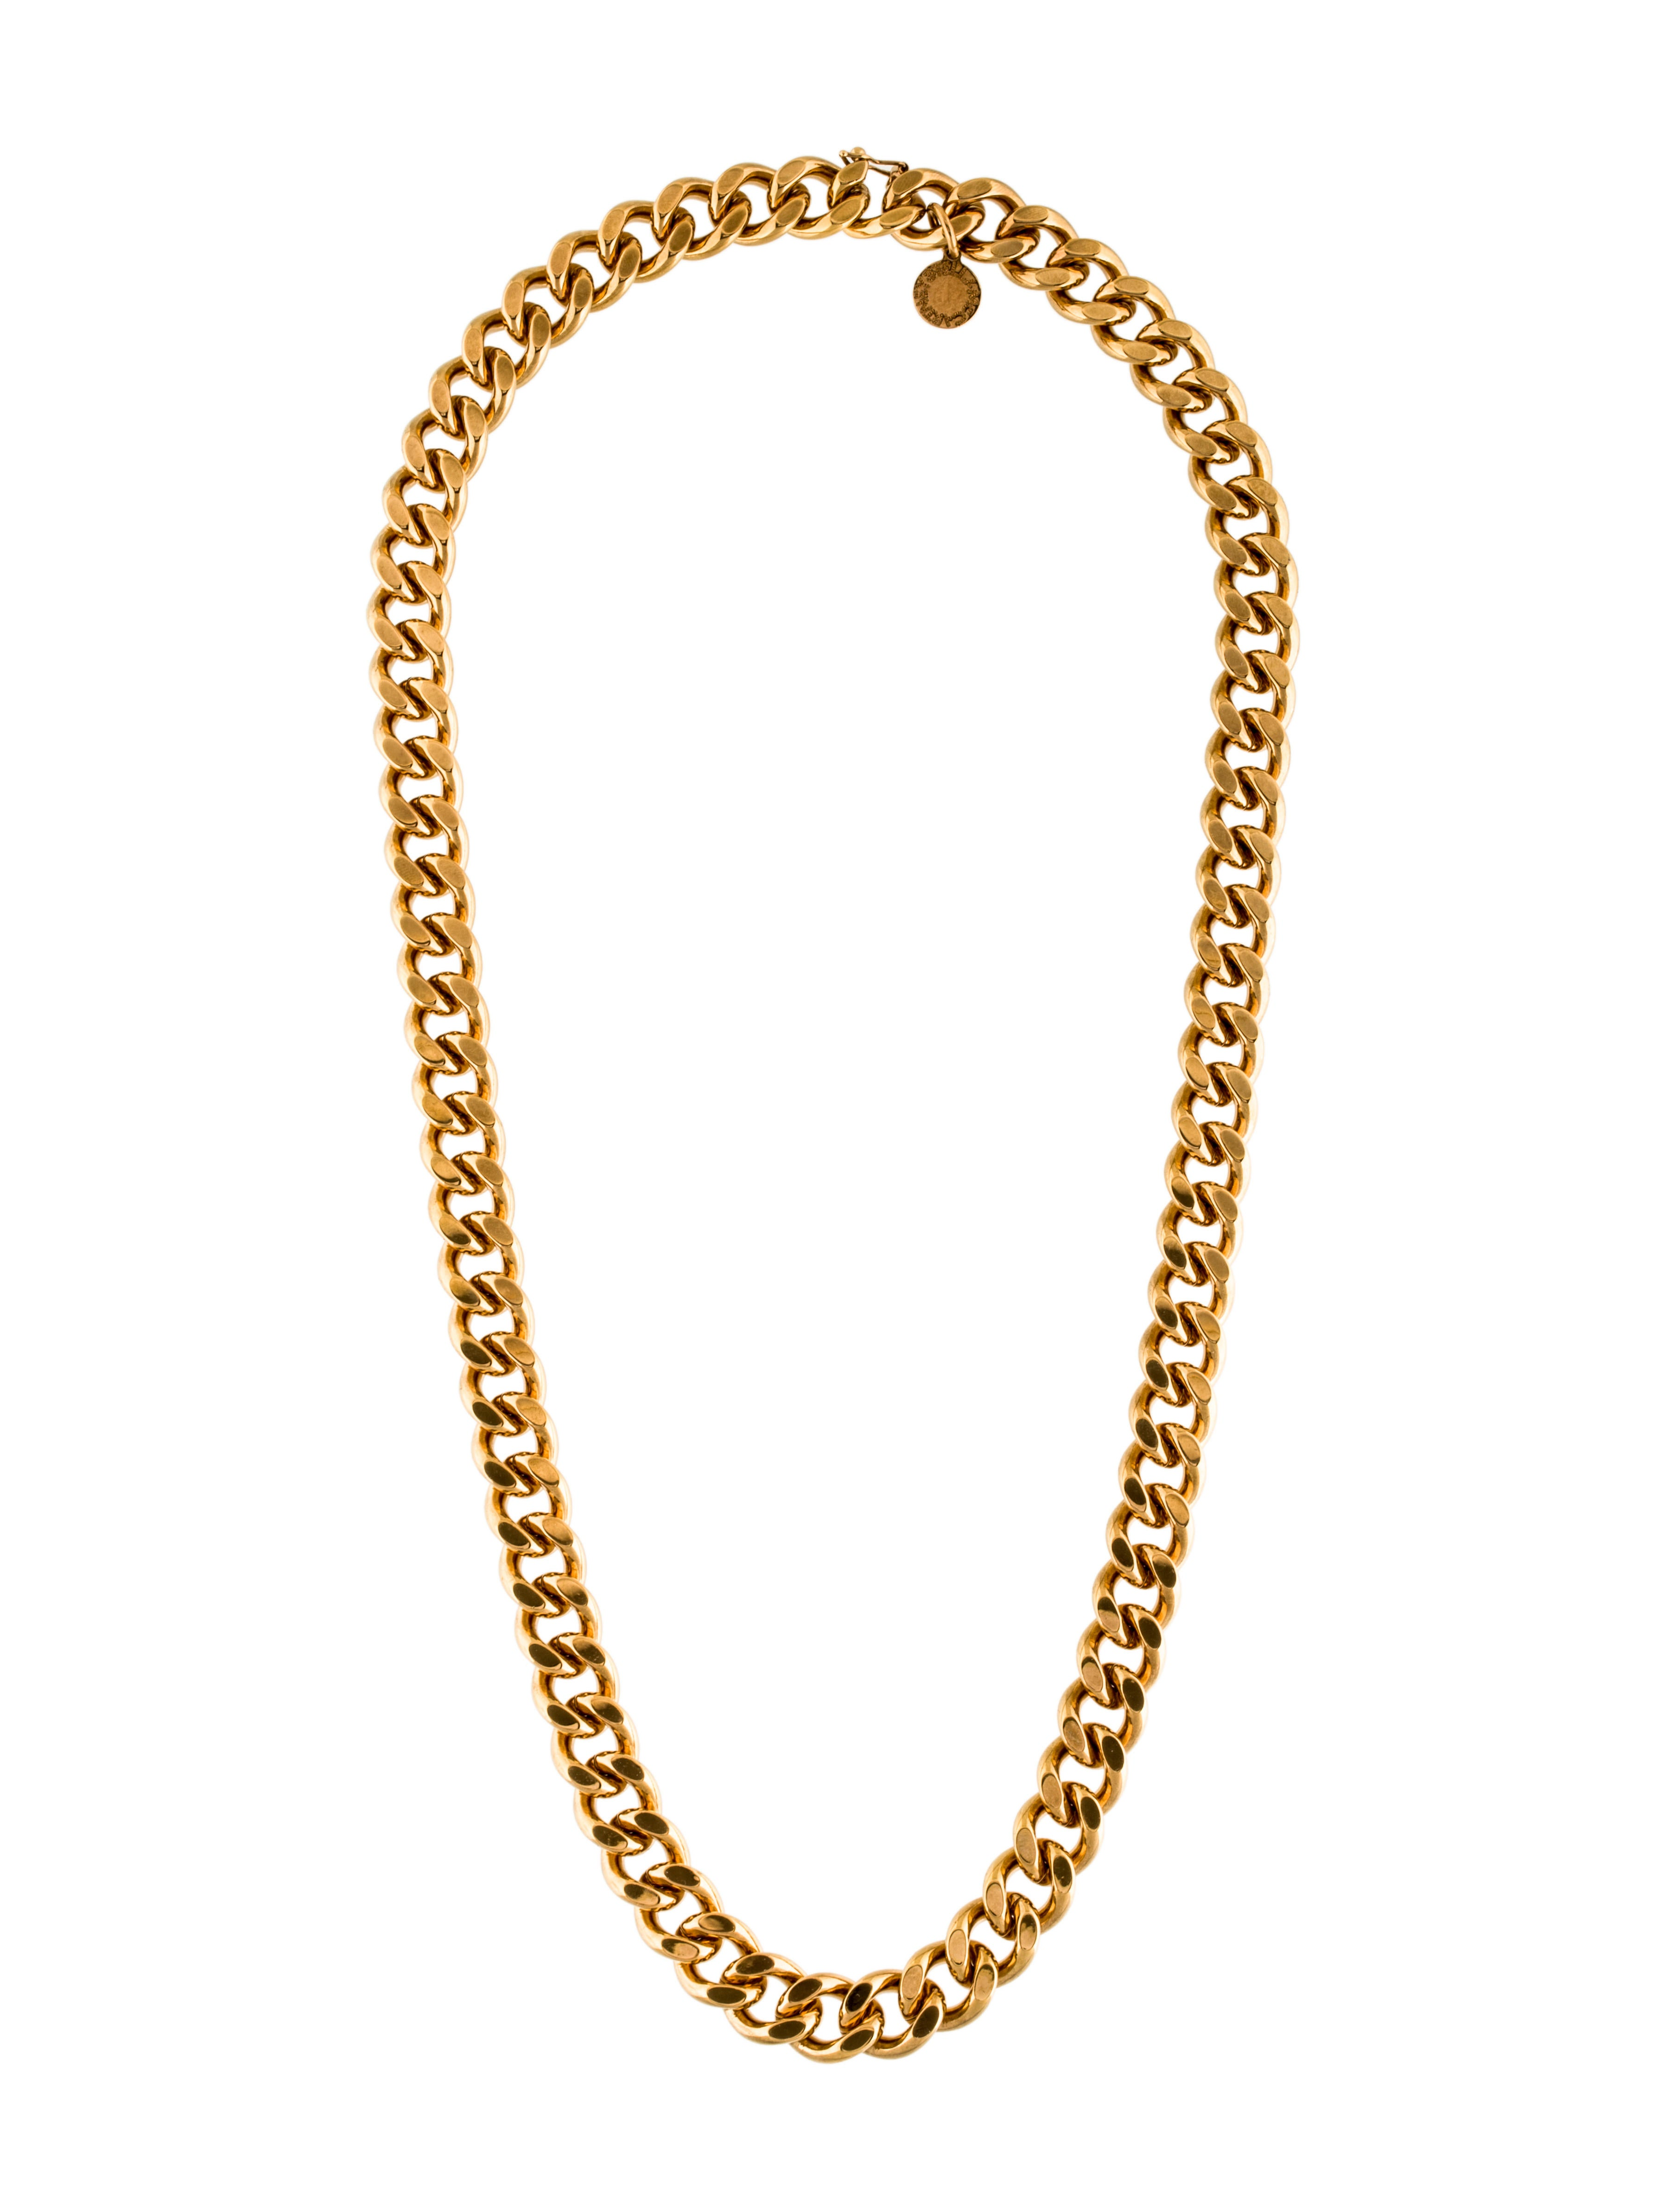 stella mccartney chunky curb chain necklace necklaces. Black Bedroom Furniture Sets. Home Design Ideas